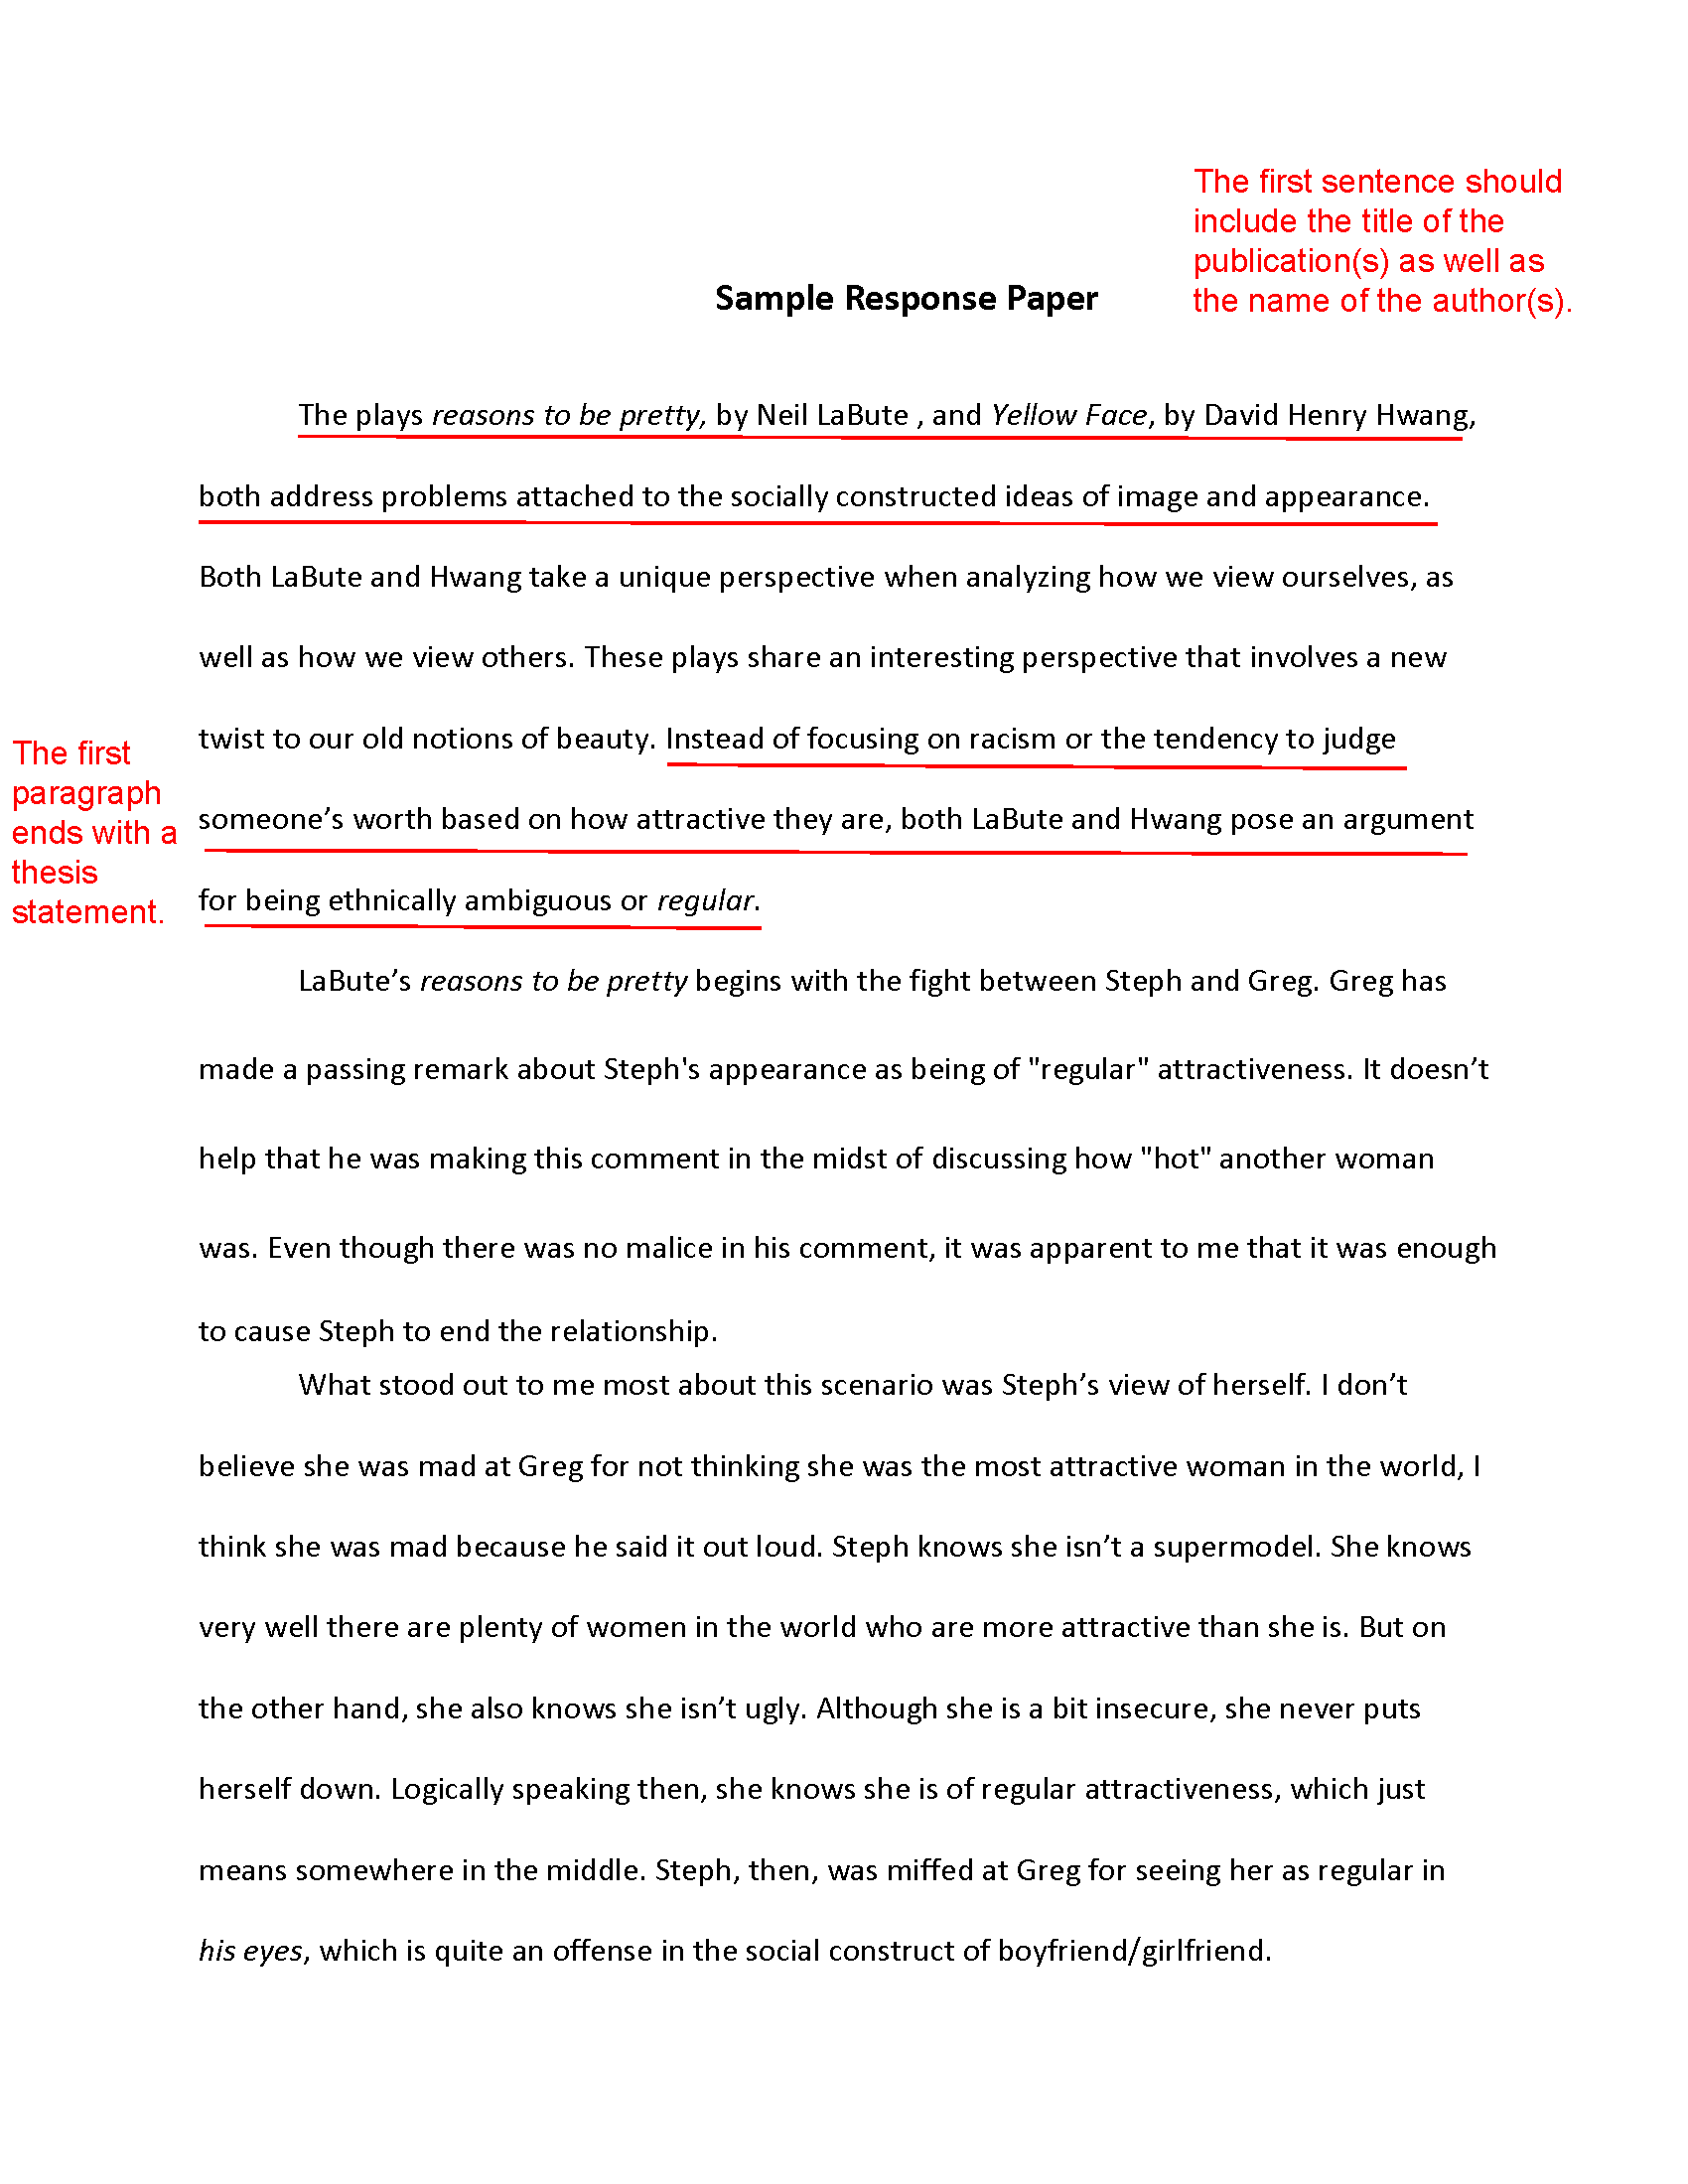 Sample Essay For High School Students  Business Communication Essay also Compare Contrast Essay Examples High School How To Write A Response Paper Thesis Statement For Persuasive Essay